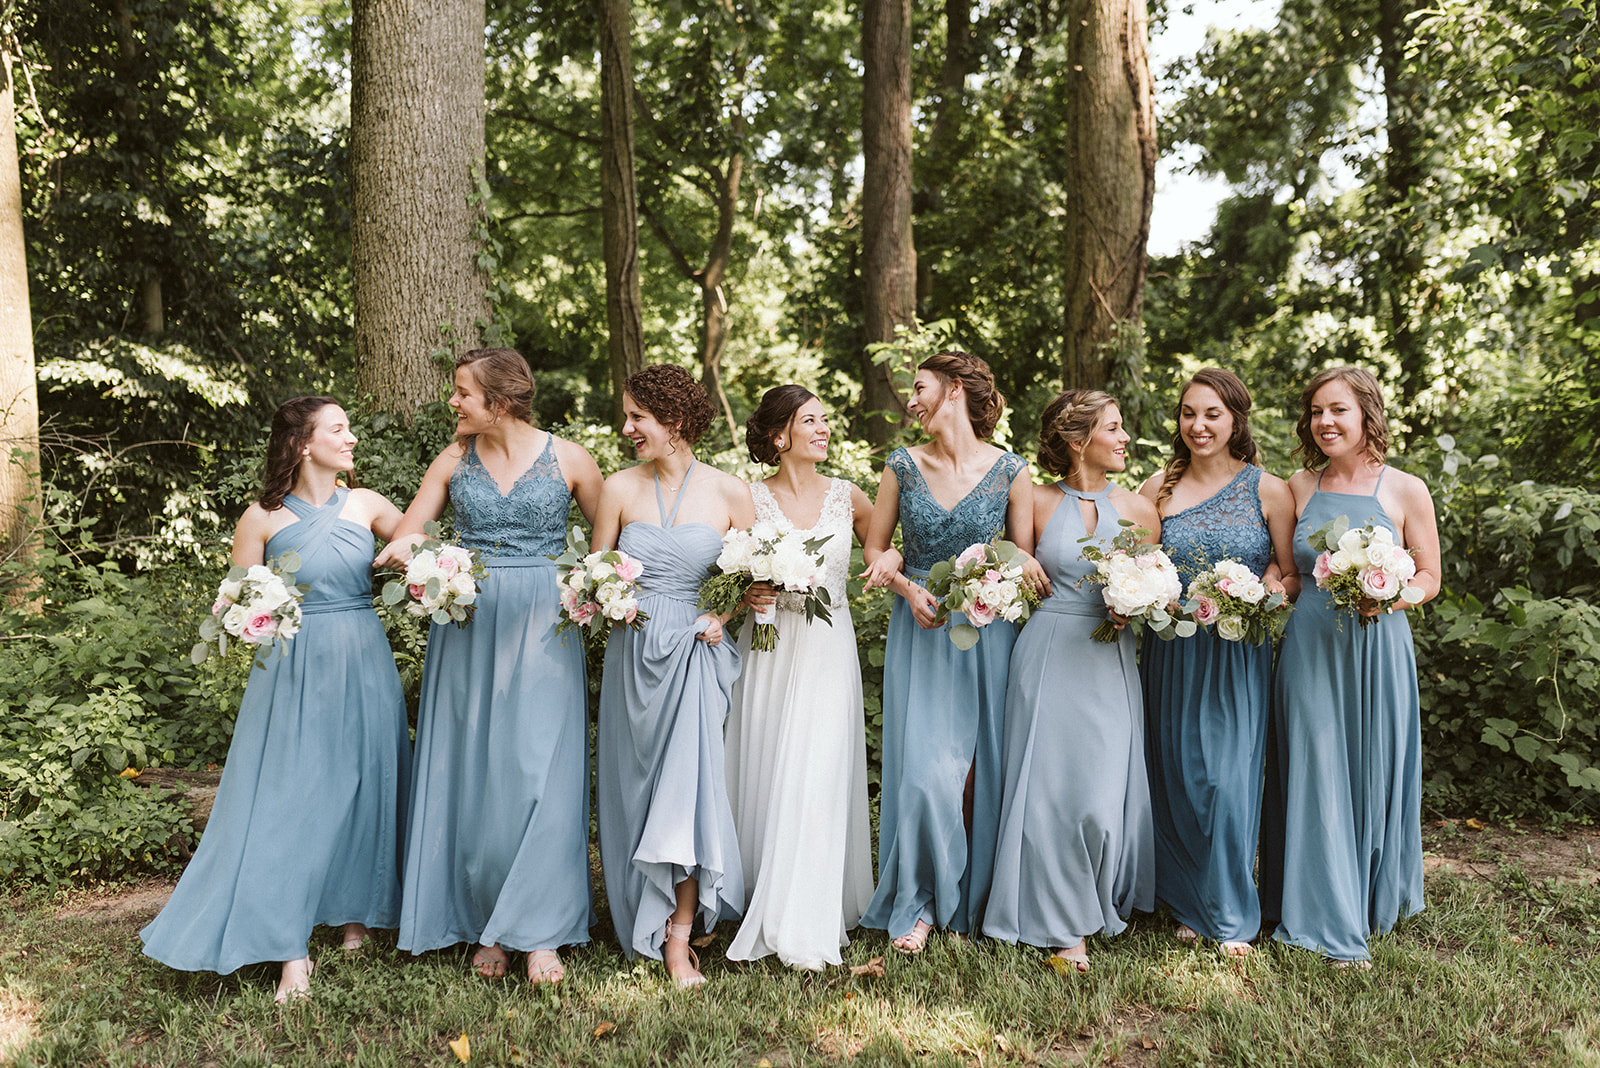 Outdoor wedding in Lancaster, Pennsylvania. Slate blue bridesmaid dresses, fluffy bouquets.